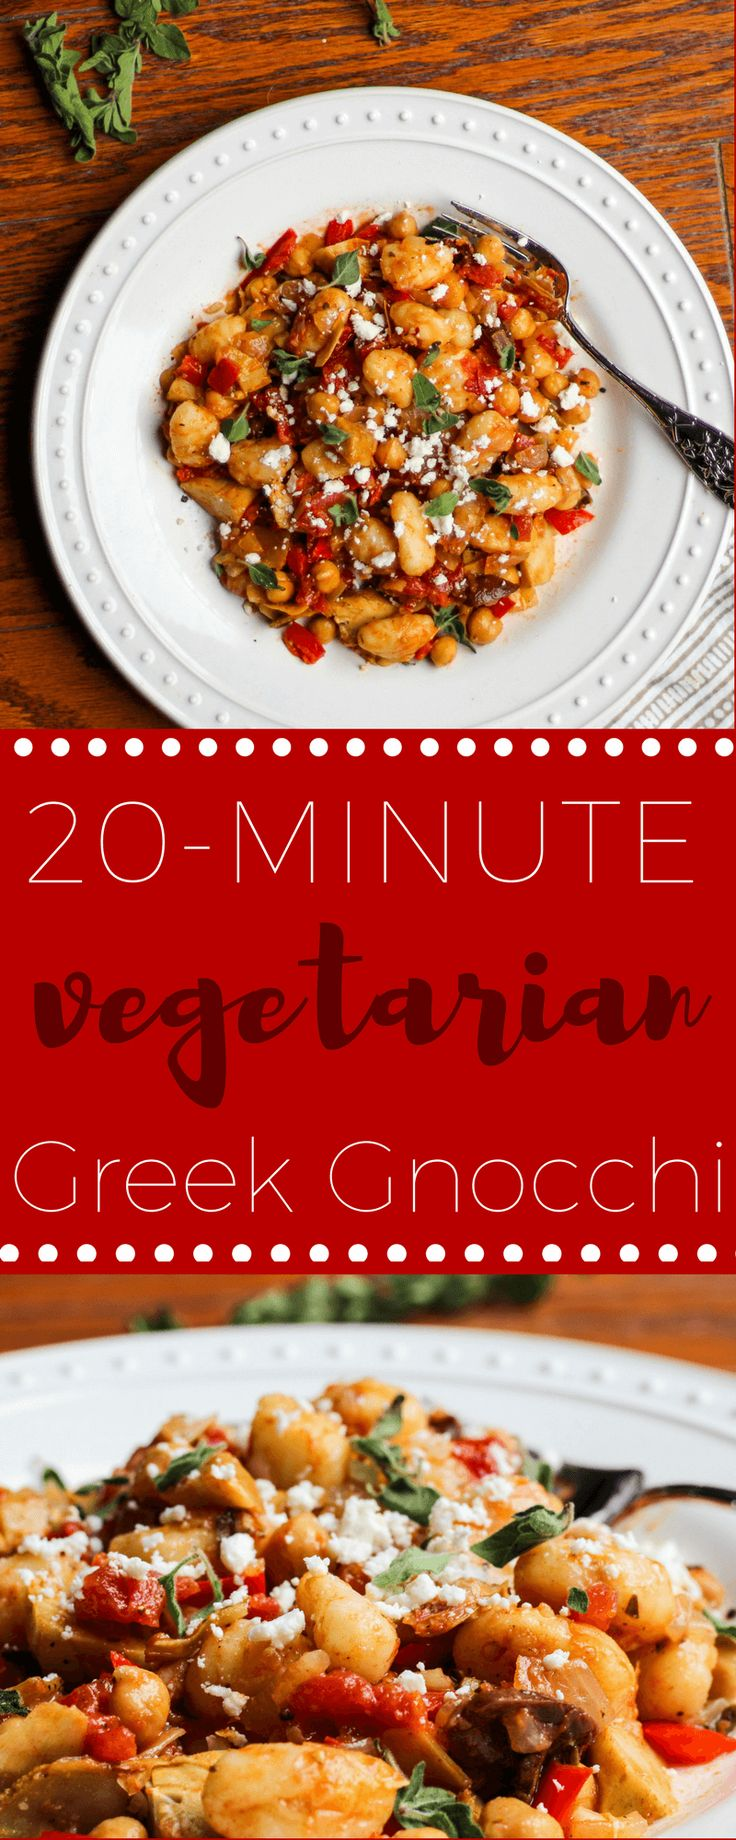 Quick Vegetarian Greek Gnocchi with Artichokes and Chickpeas via @Ally's Cooking